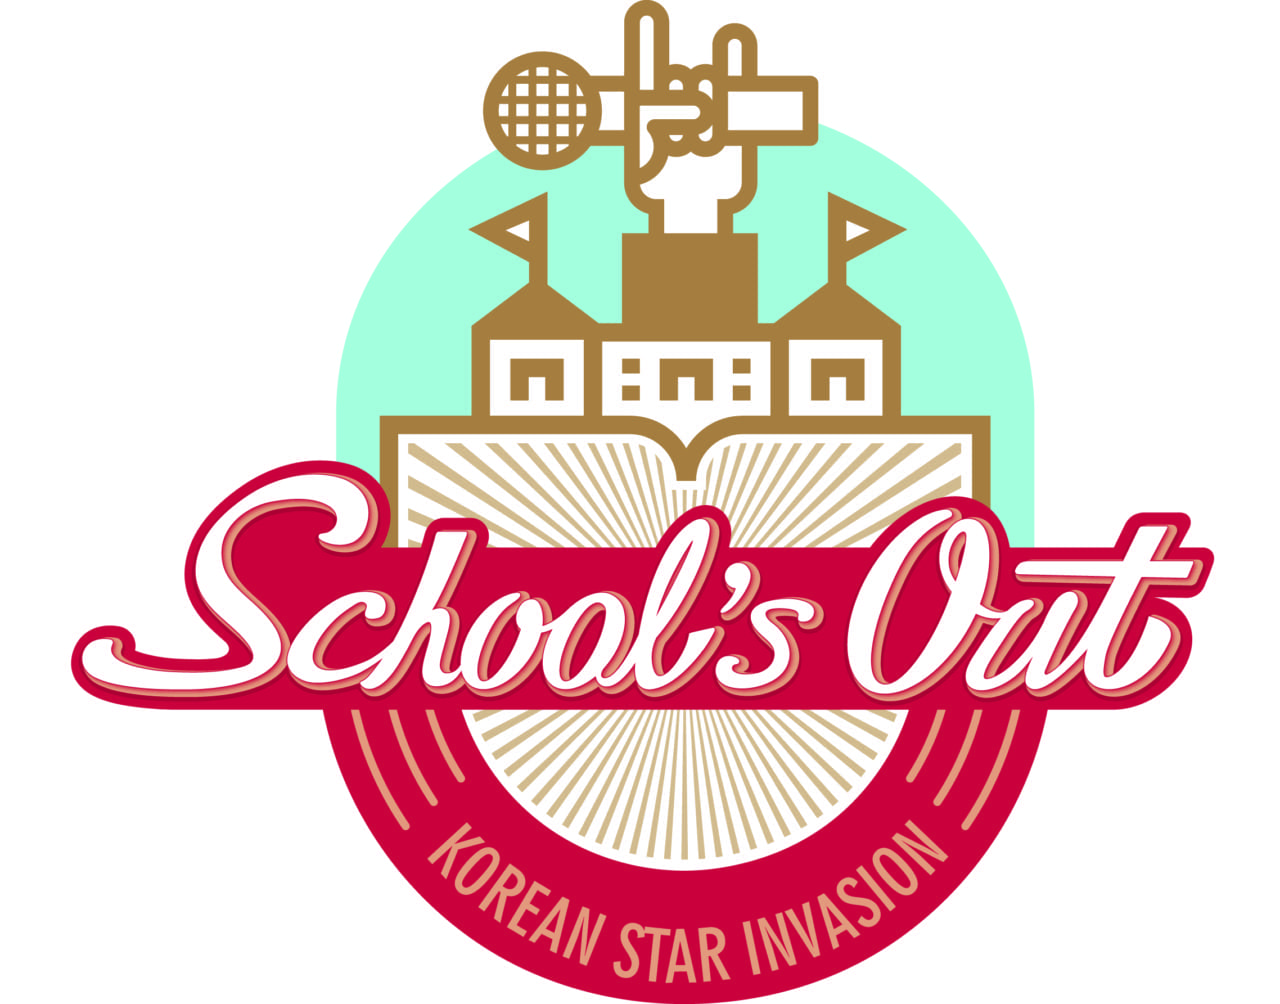 School's OUT - a unique artist reality programme produced by channel M (Photo Credit: channel M)